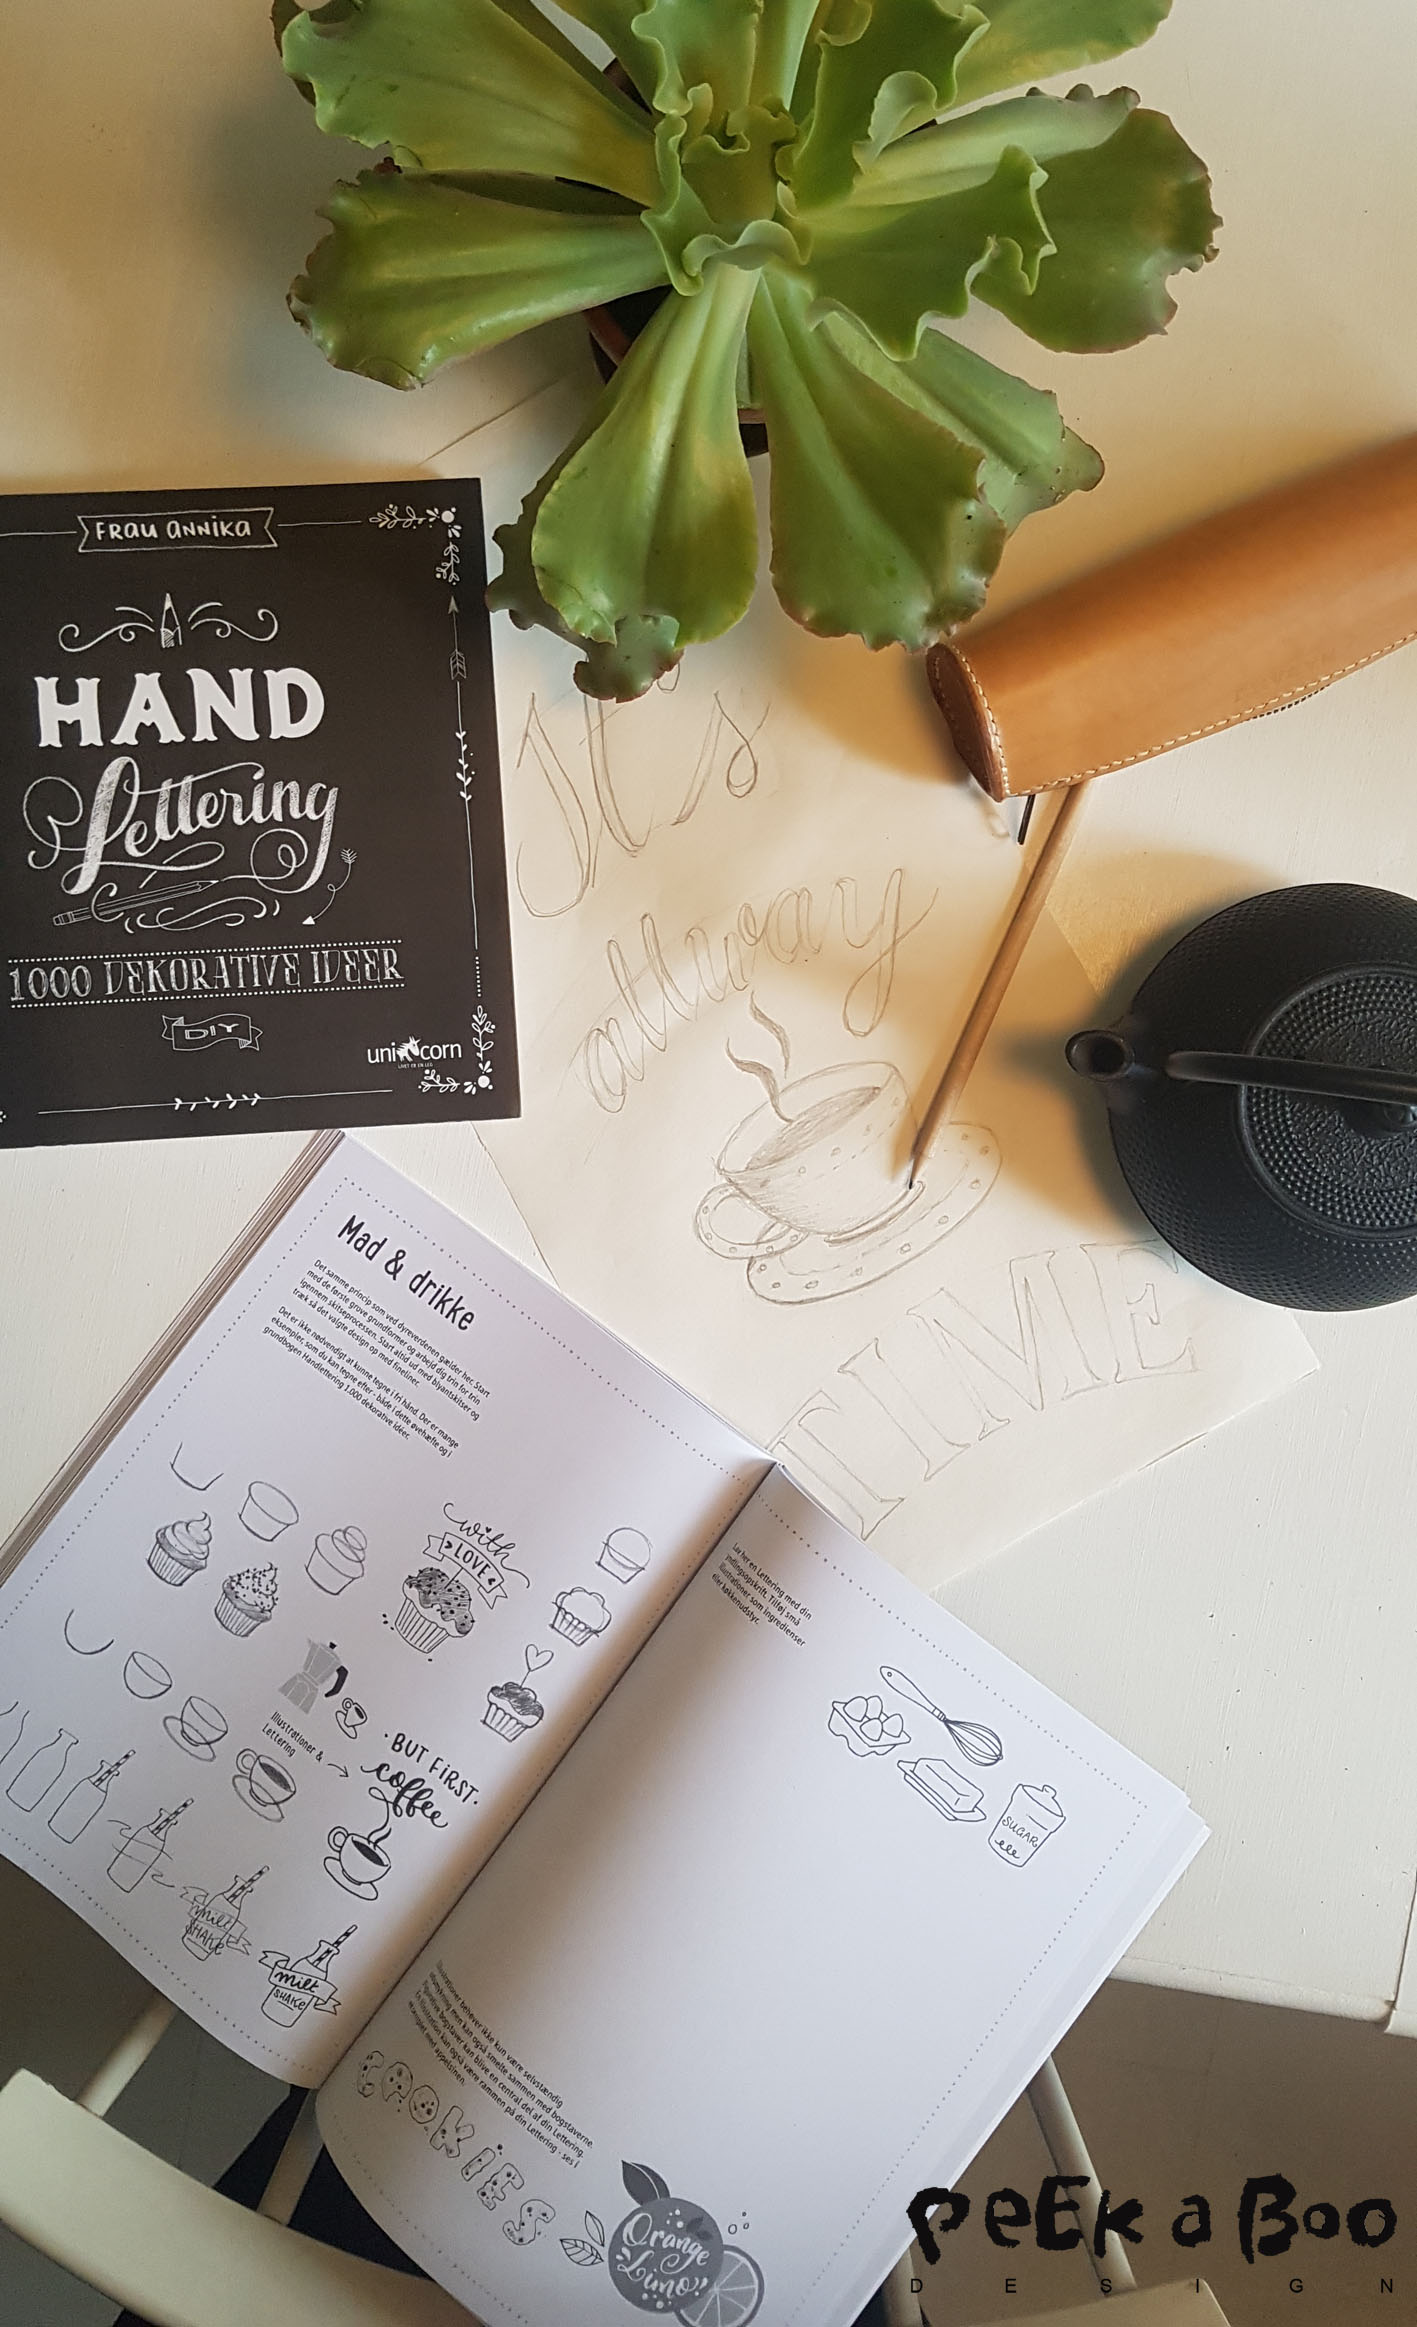 the book Handlettering in danish from forlaget unicorn.